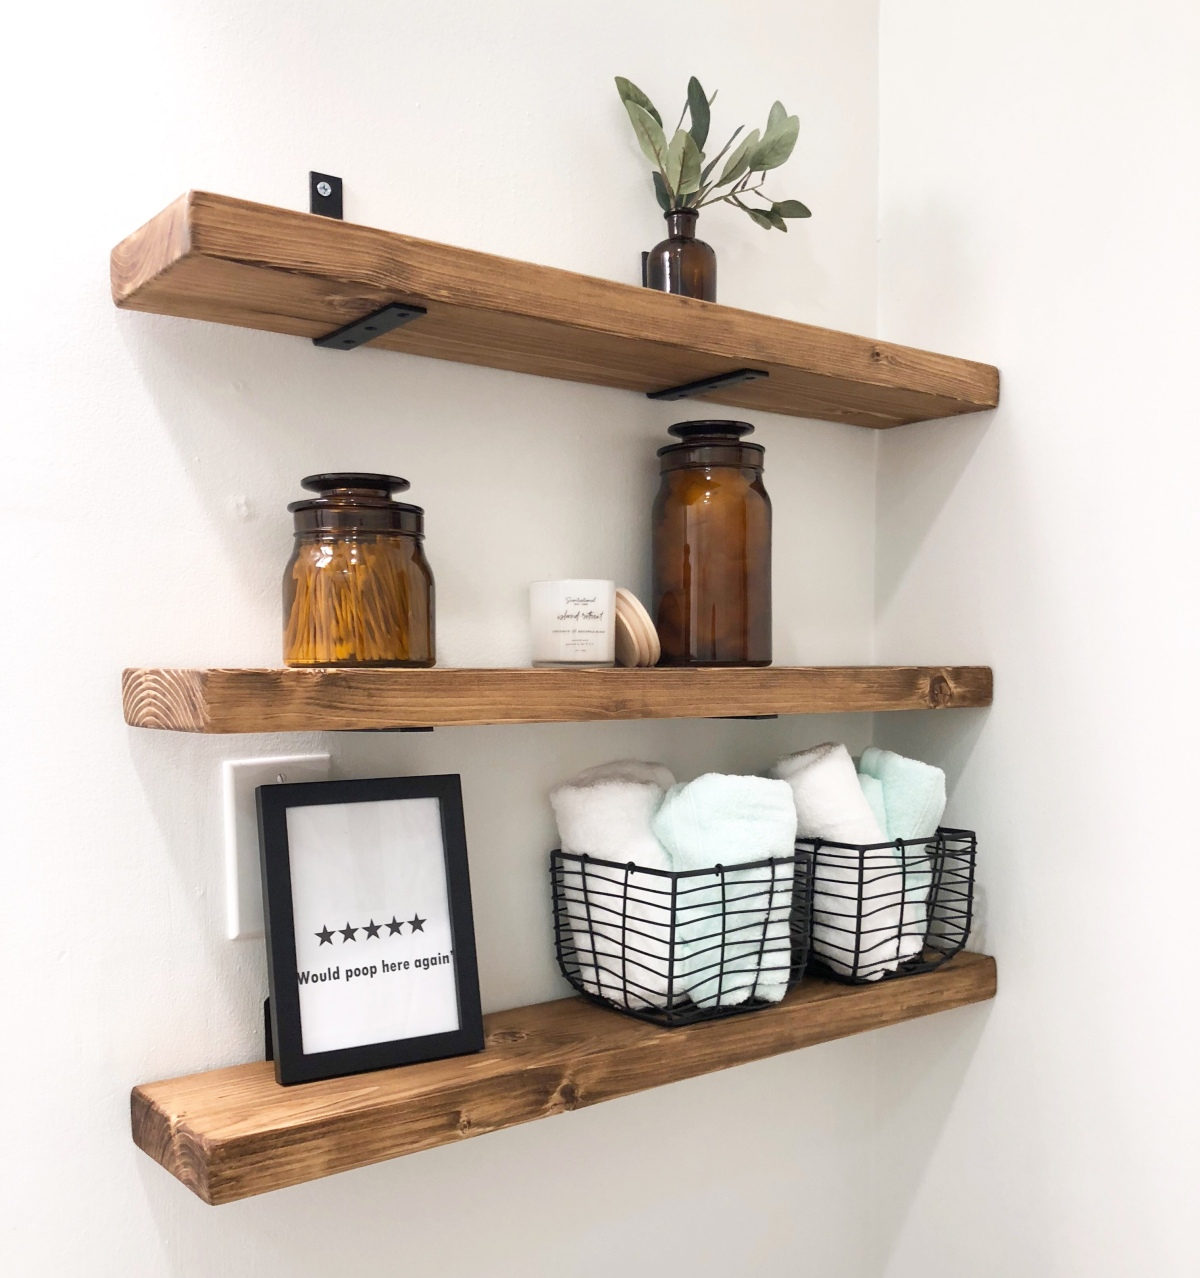 DIY Bathroom Shelves Tutorial